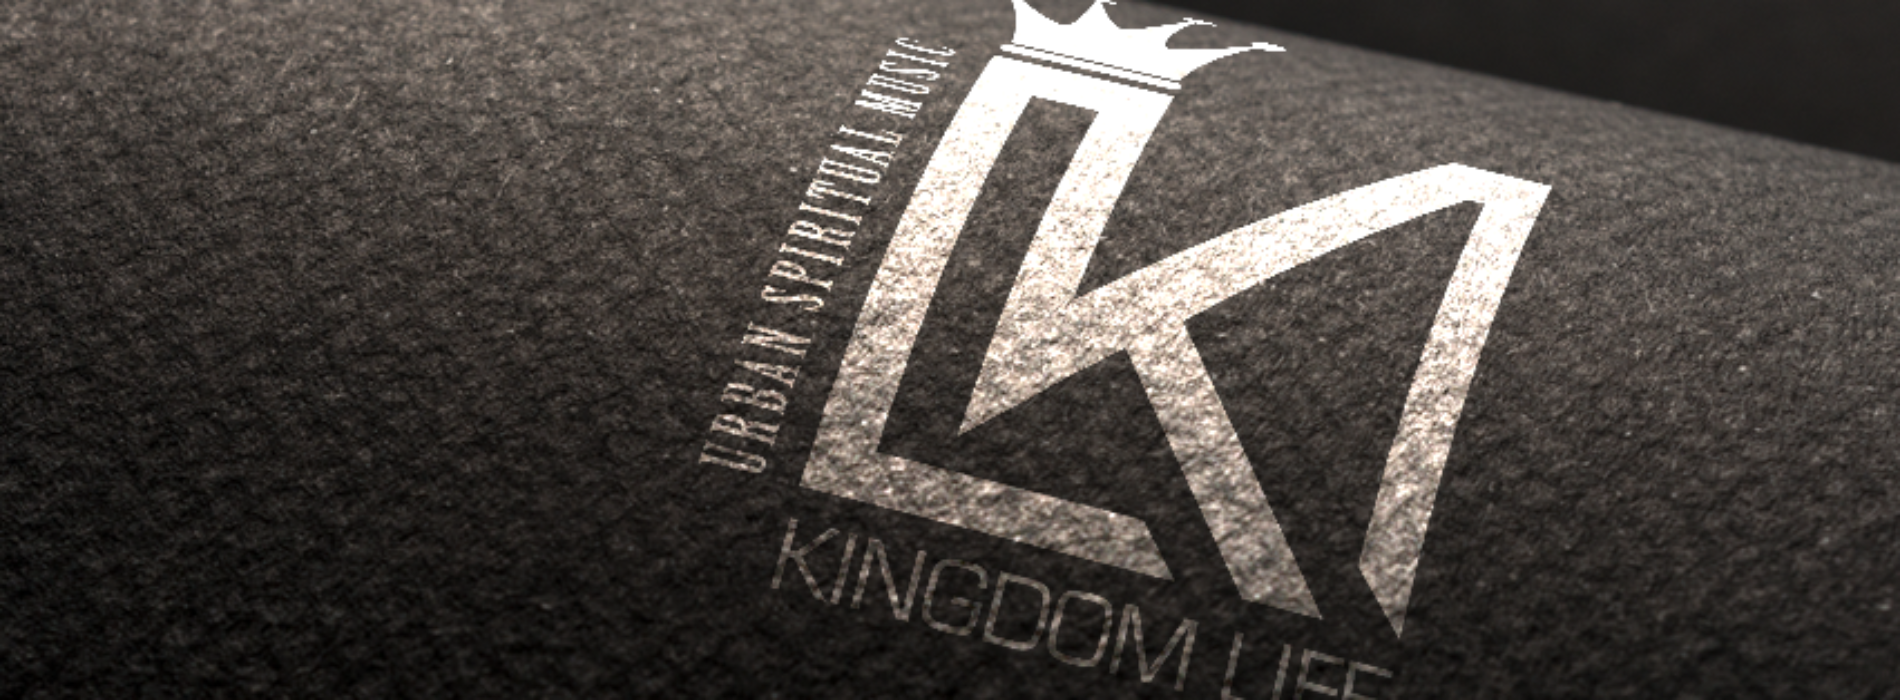 Kingdom Life Announces Album